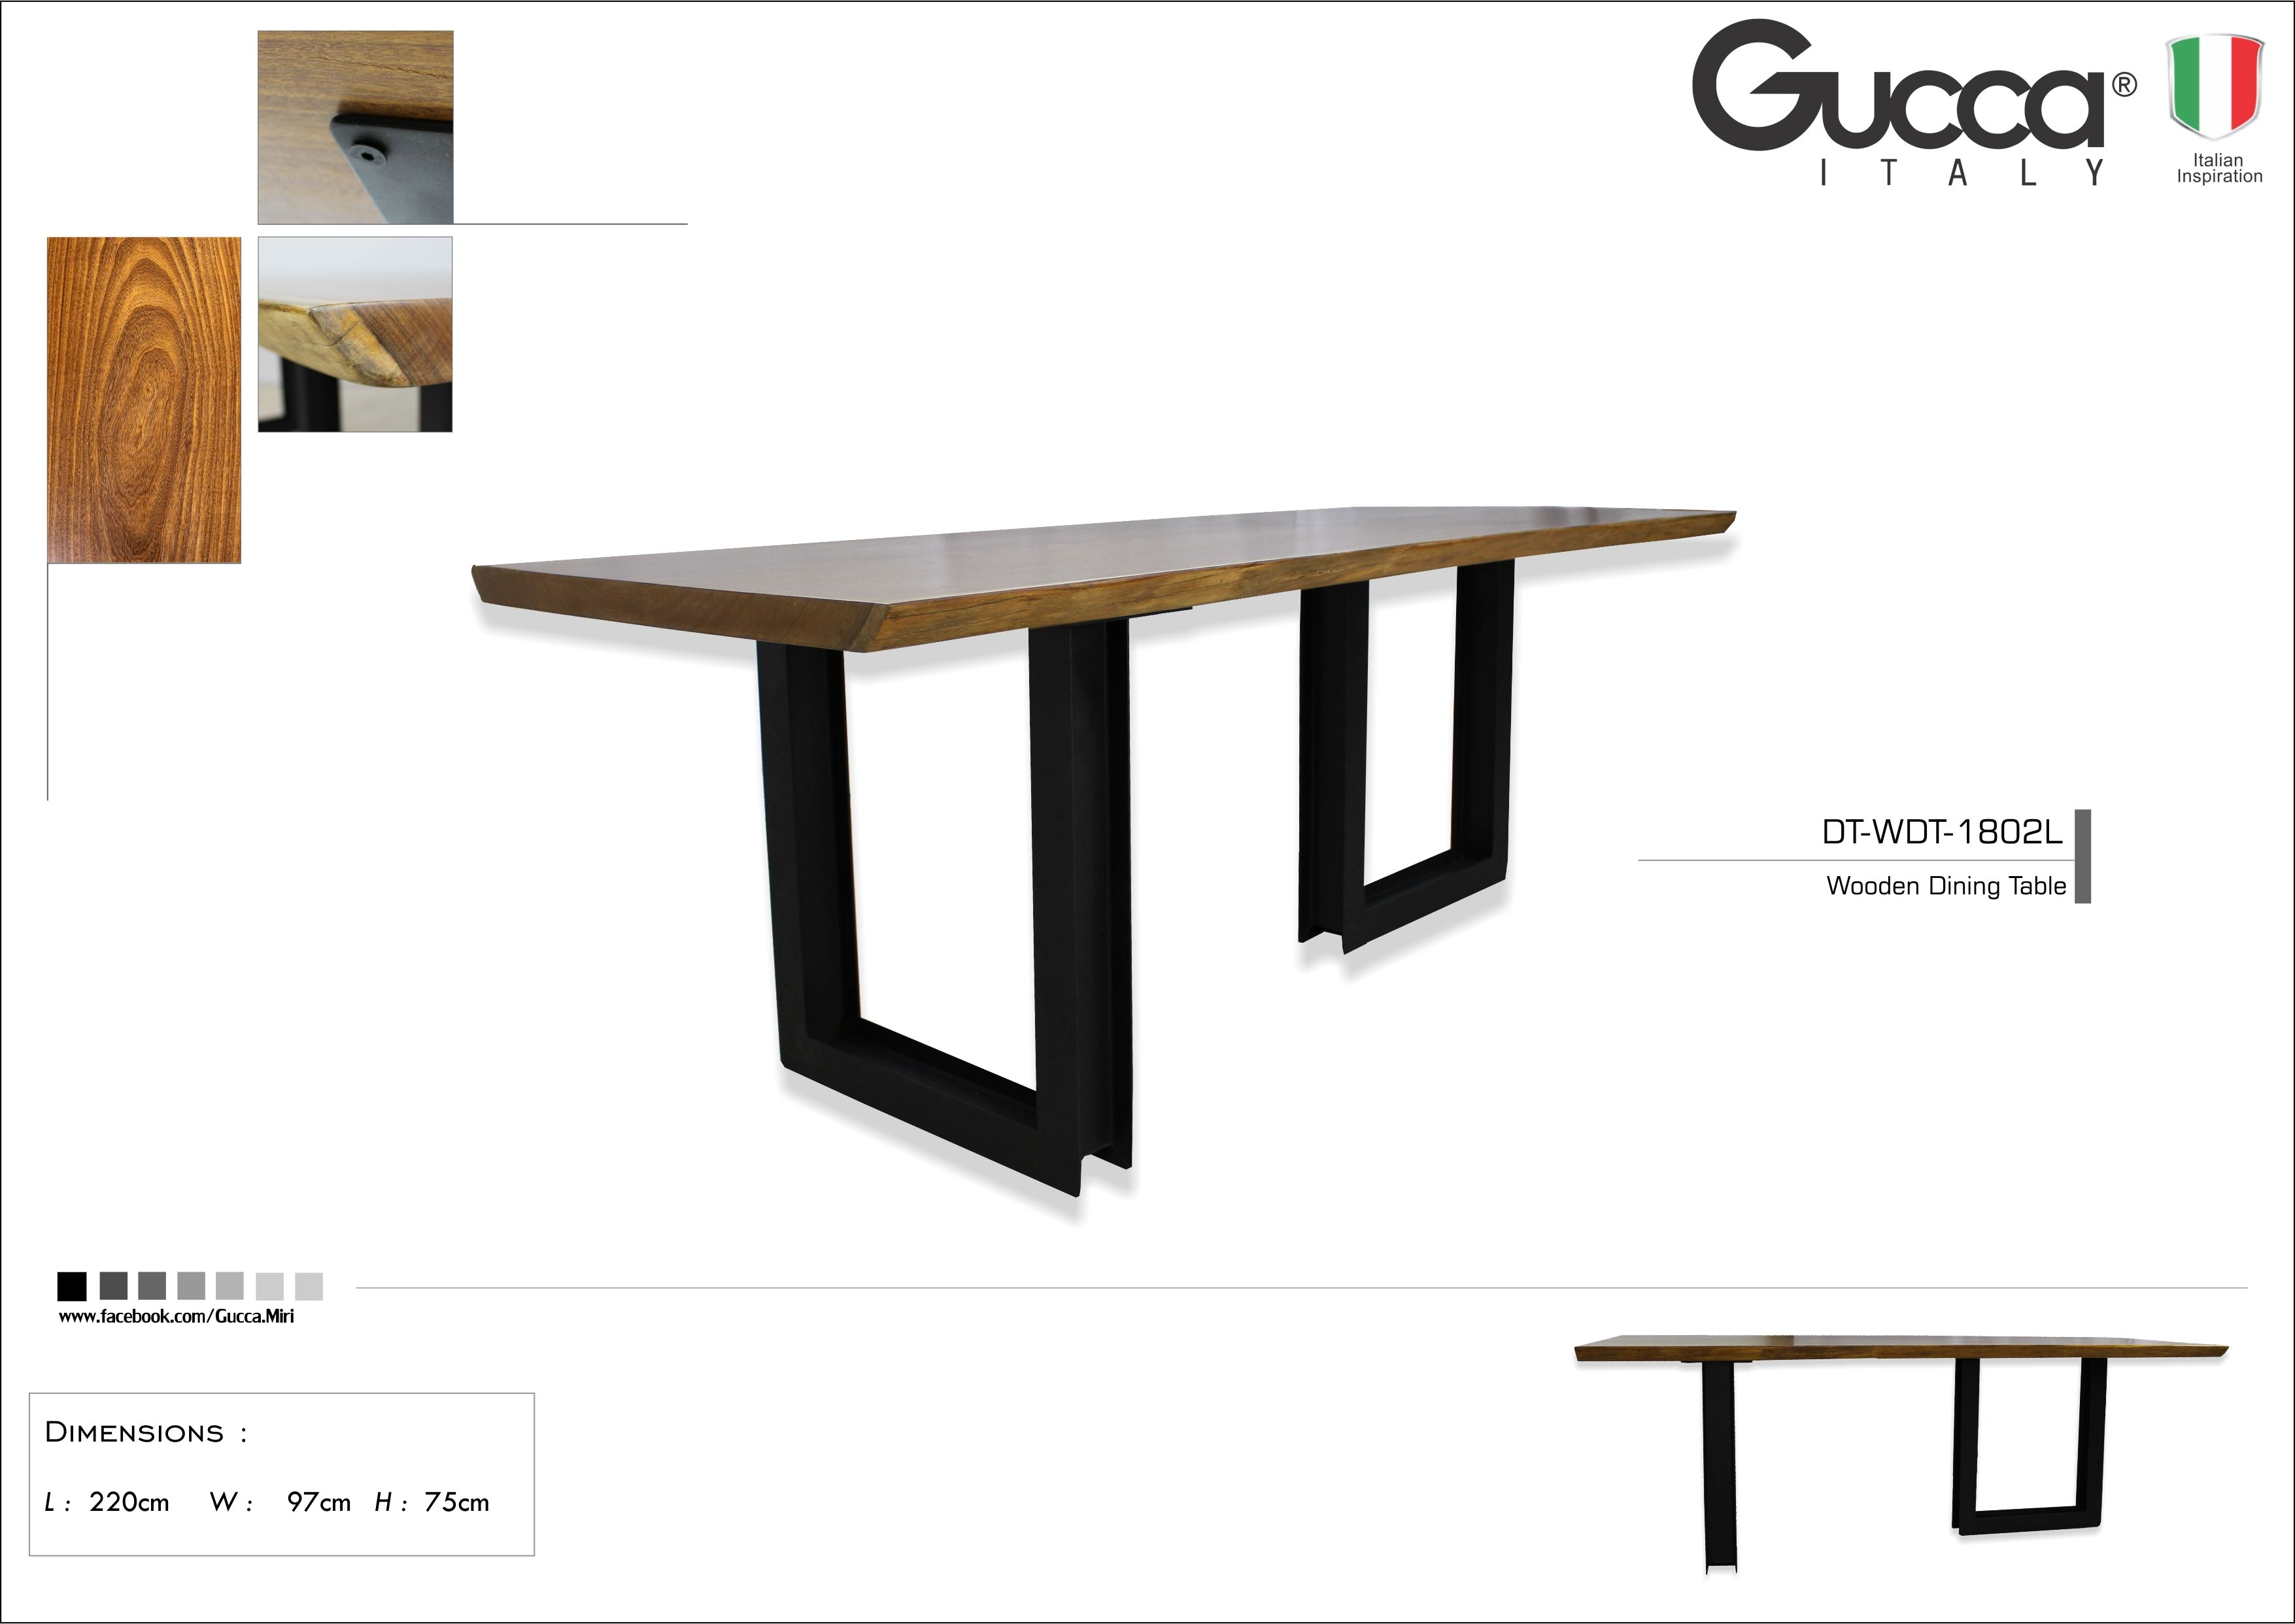 Wooden Dining Table Gucca Italy Miri G Brothers Furniture Sdn